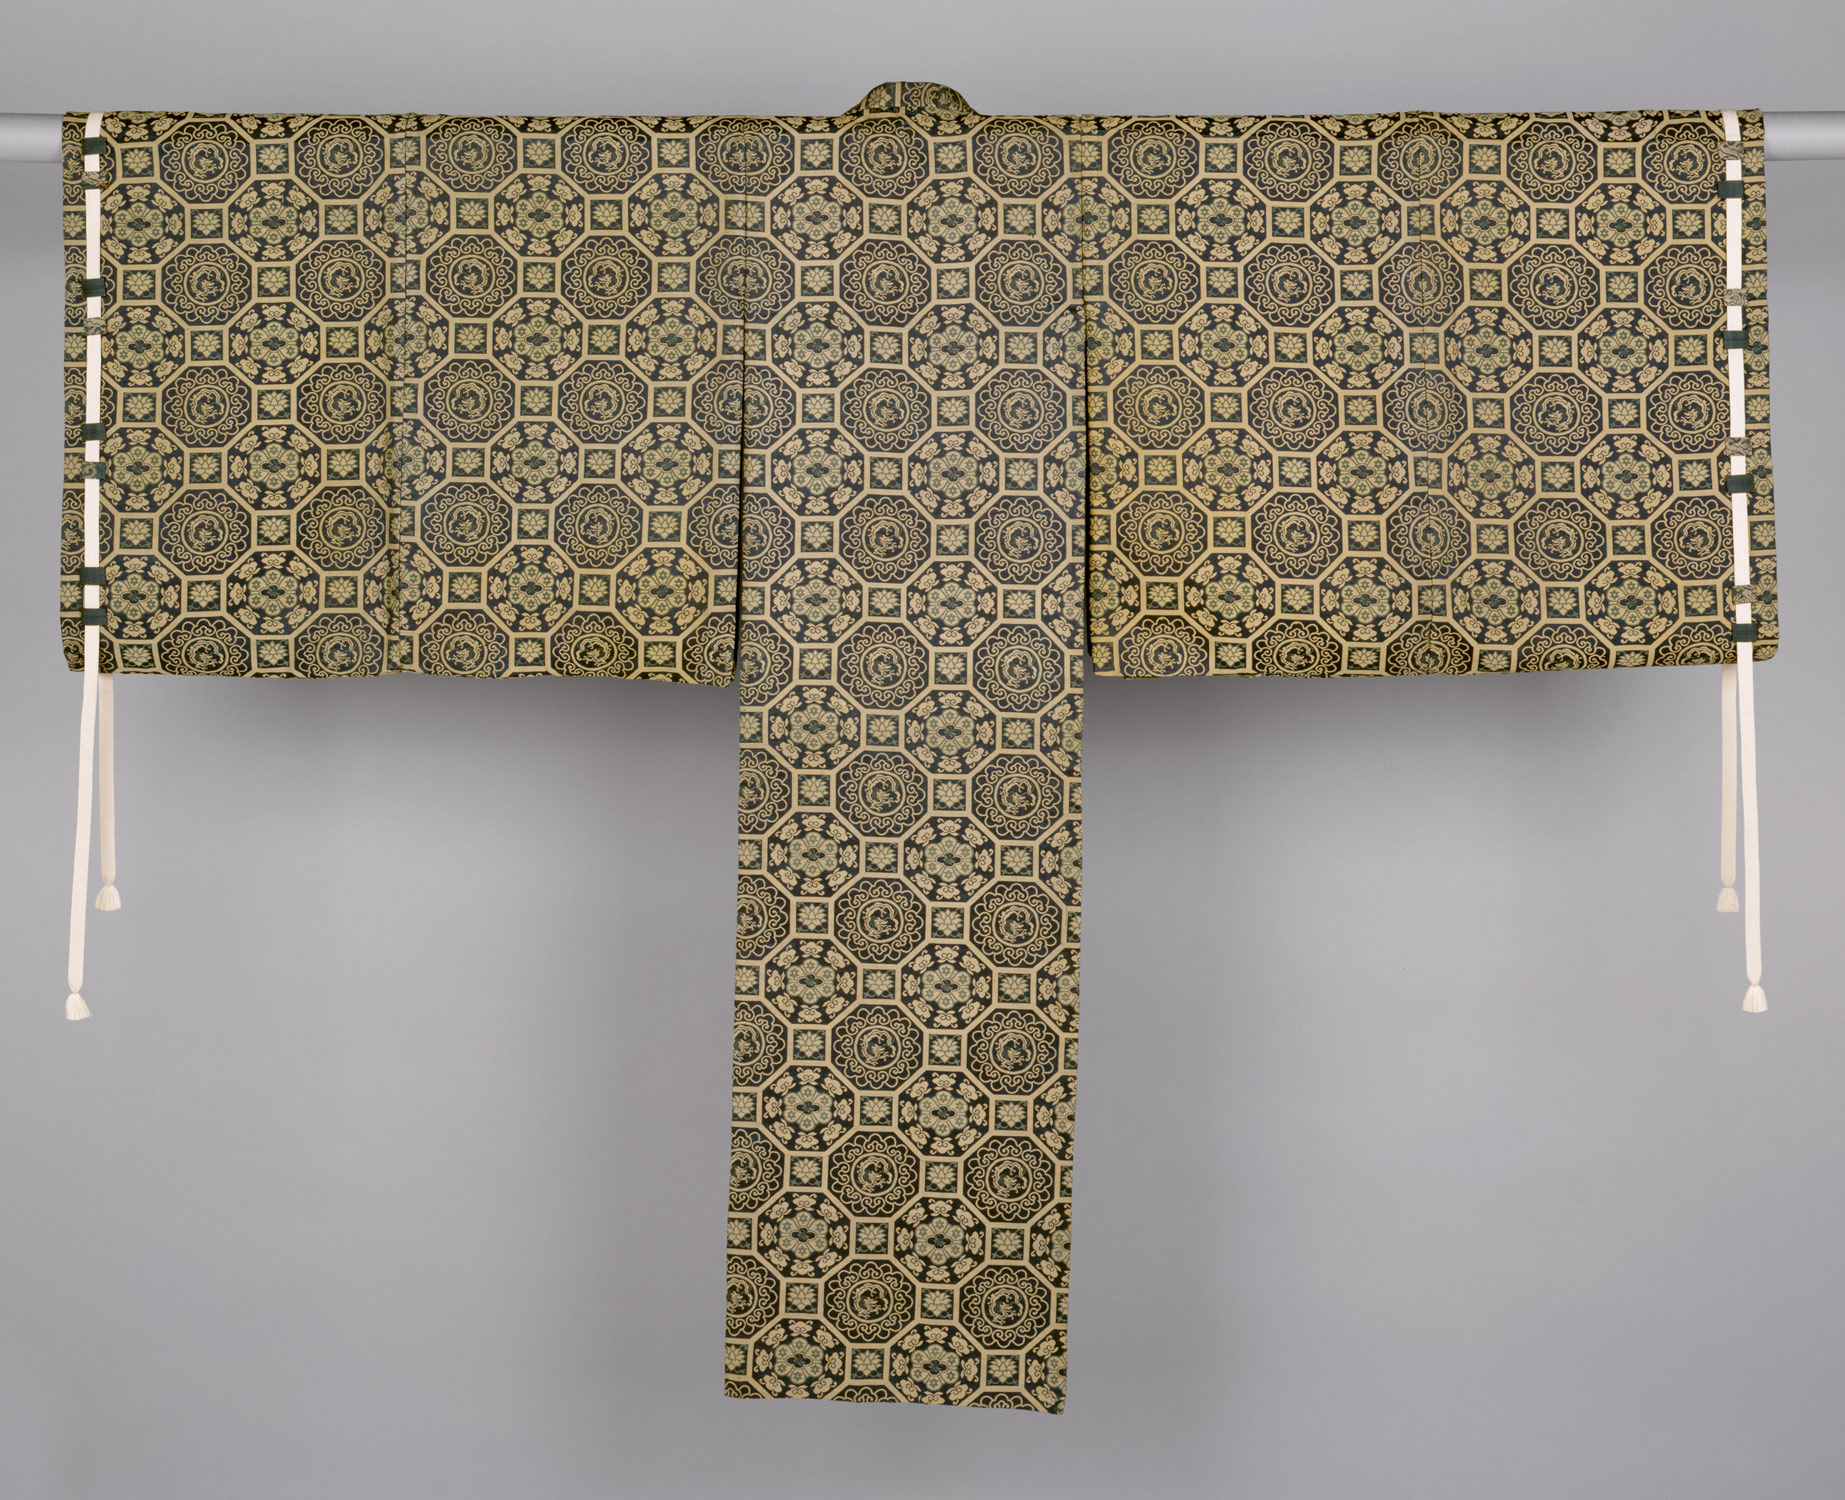 Noh costume (kariginu) with geometric pattern